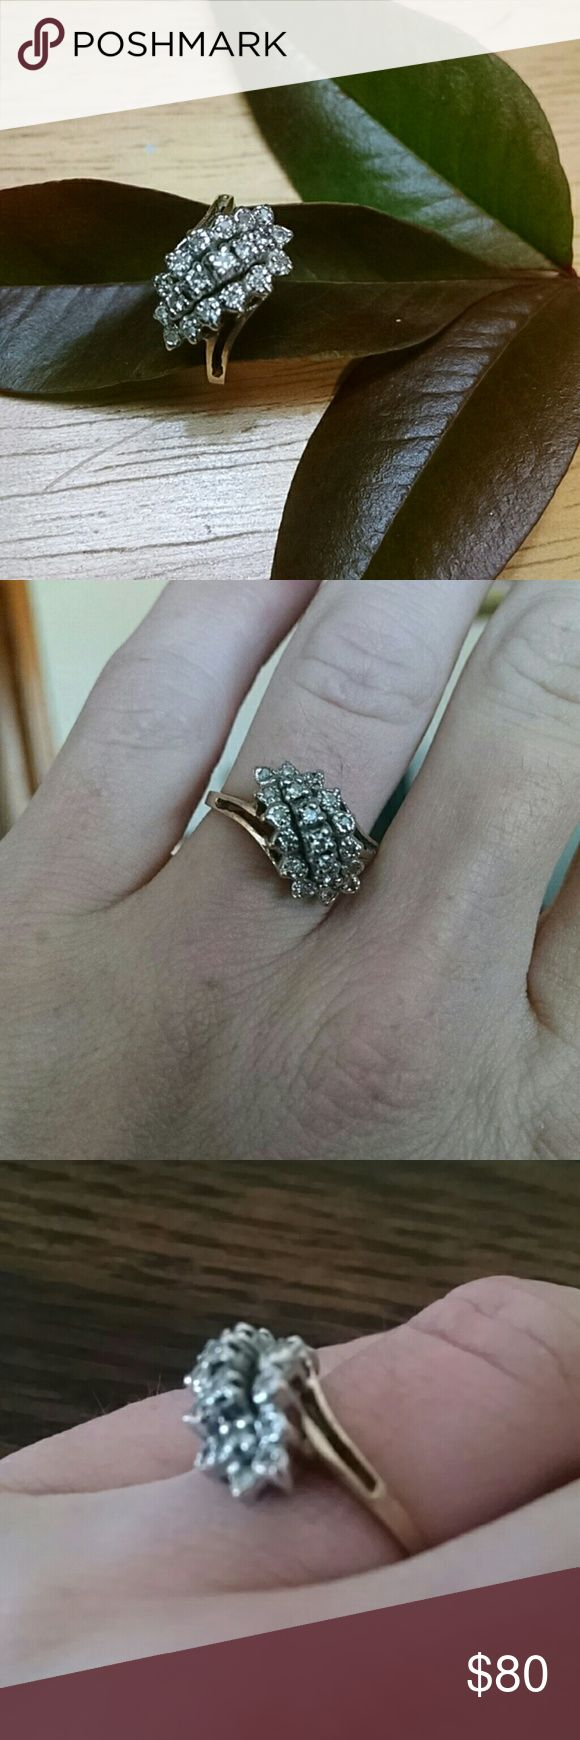 Diamond ring price firm This ring was handed down to me when I turned 21. I wear a size 7 and it fits my ring finger perfect It is indeed a jewel. Its worth a hell of a lot more than what I am selling it for however I know it needs to go to someone who will actually wear it more than I will. Please do not low ball this ring. Price is firm unless bundled with other items. Thank you in advance. Jewelry Rings